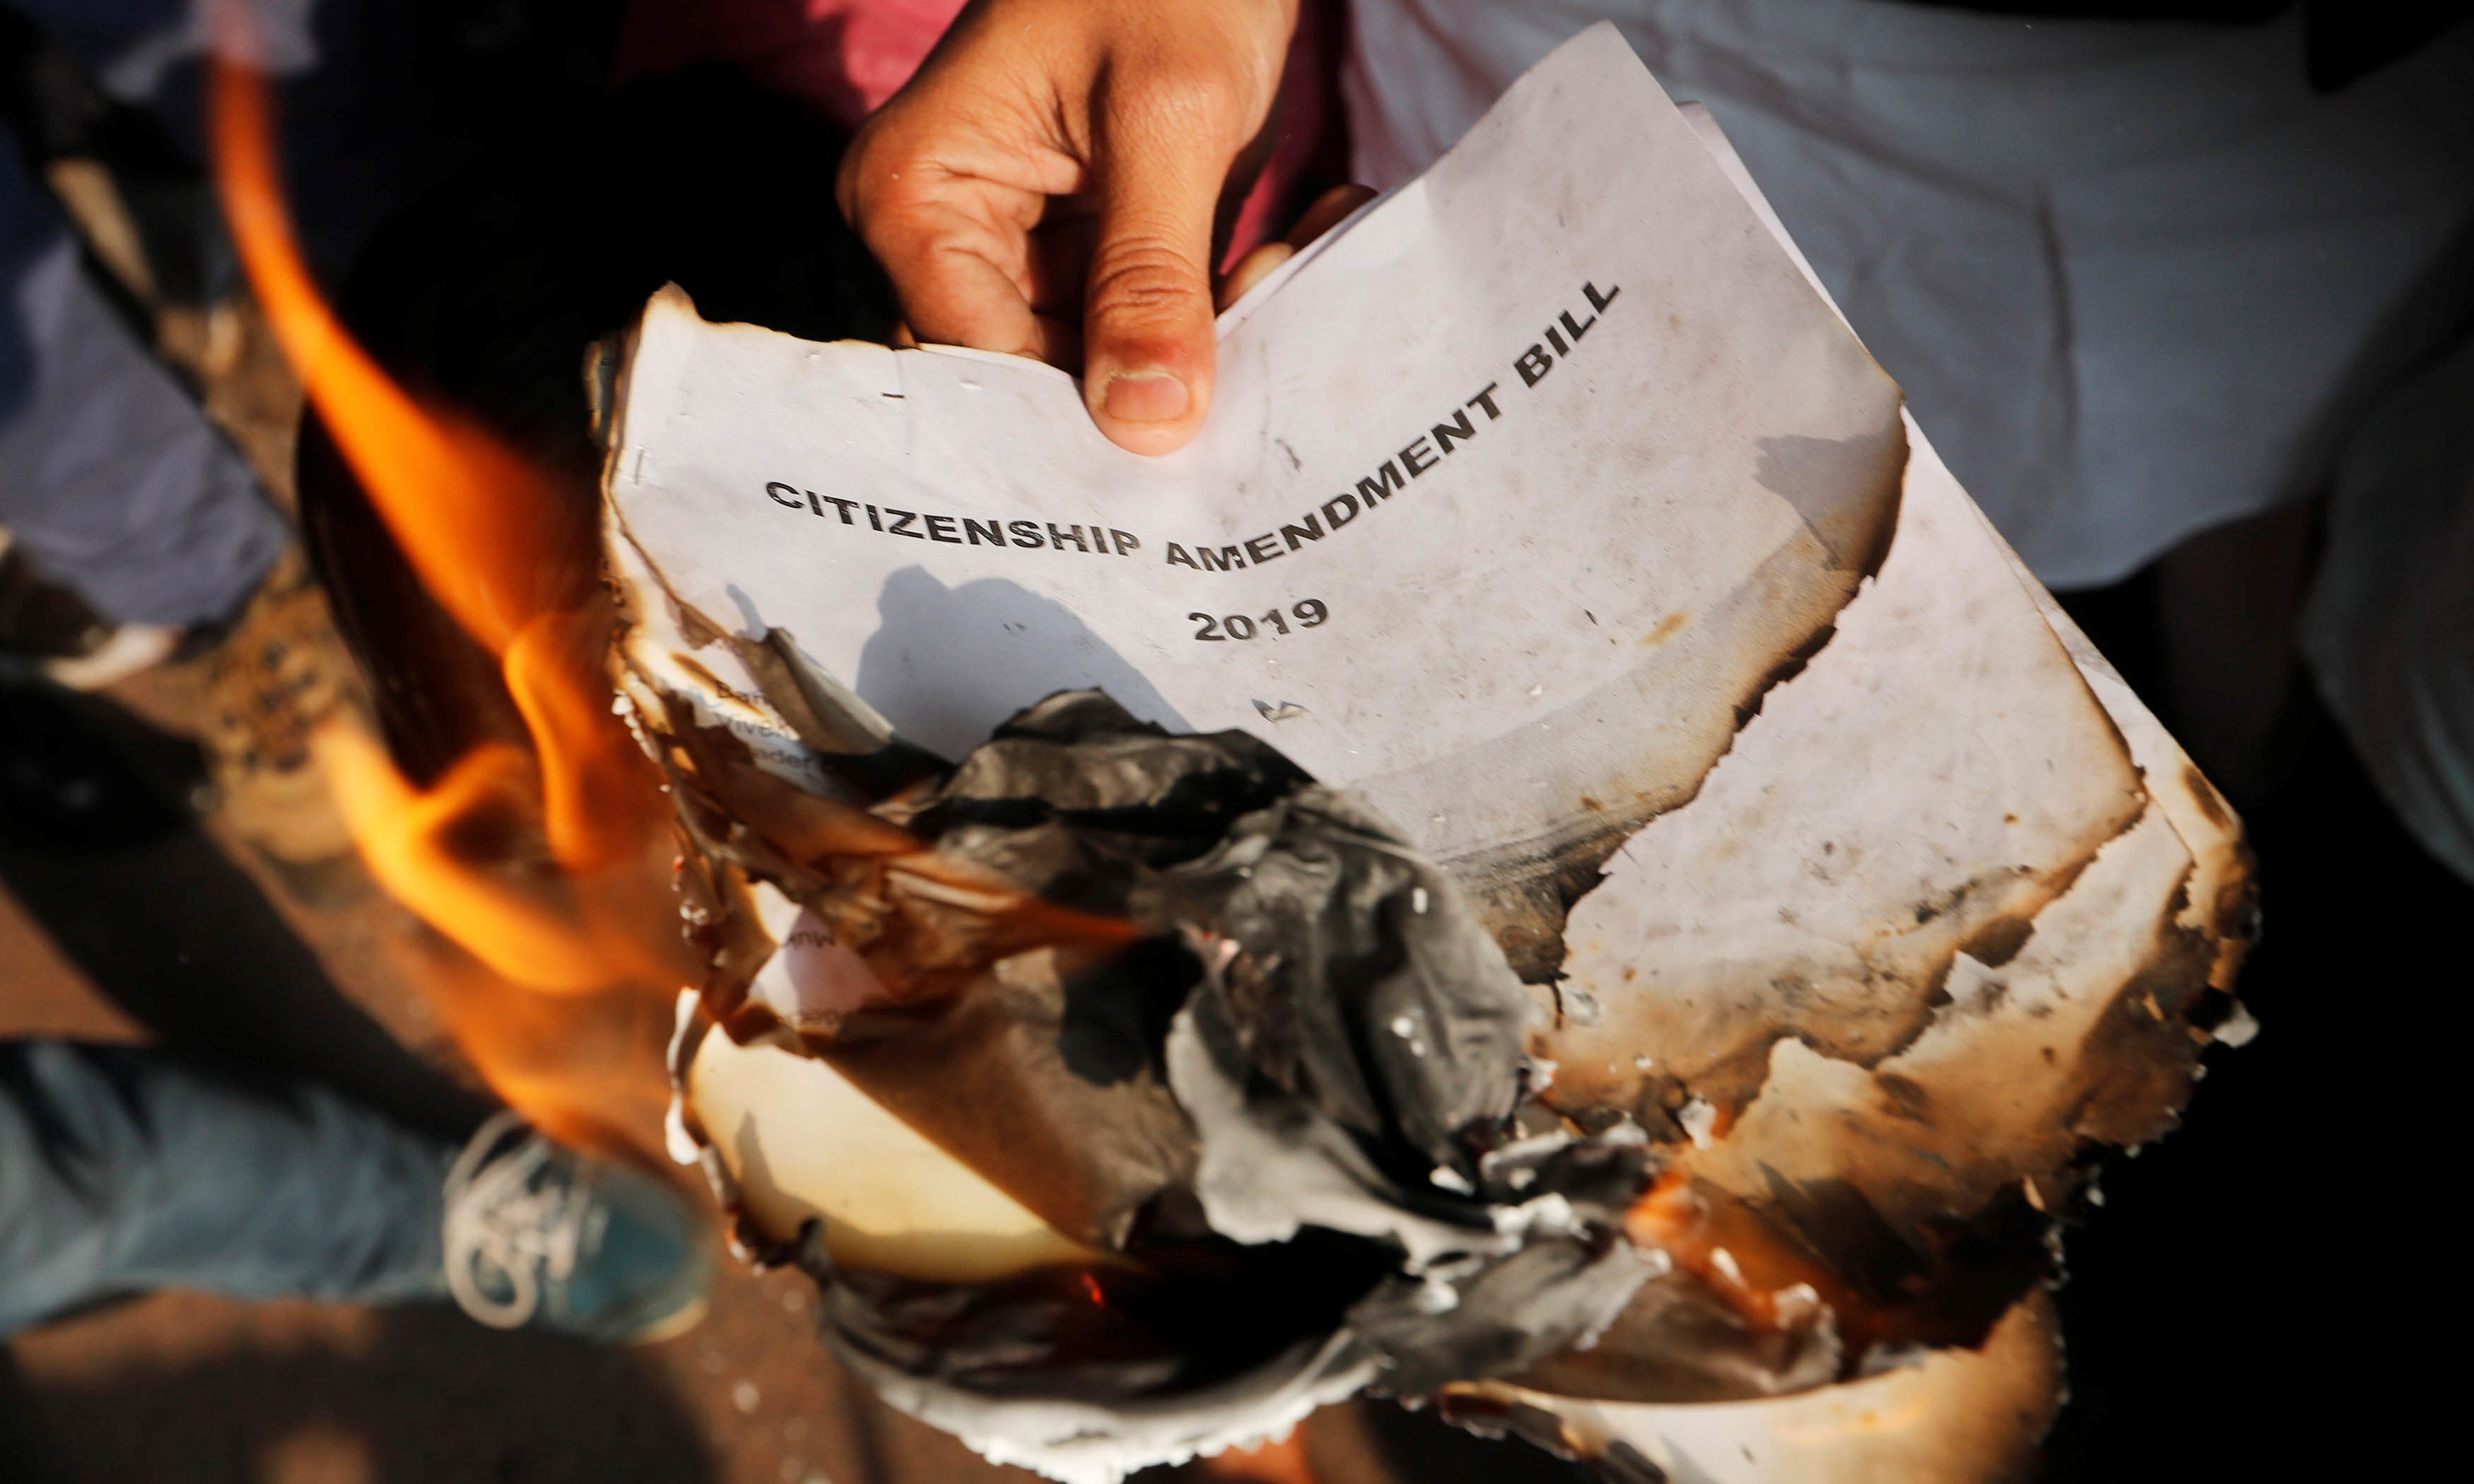 Demonstrators burn copies of the Citizenship Amendment Bill, a bill that seeks to give citizenship to religious minorities persecuted in neighbouring Muslim countries, during a protest in New Delhi, India on Dec 11. — Reuters